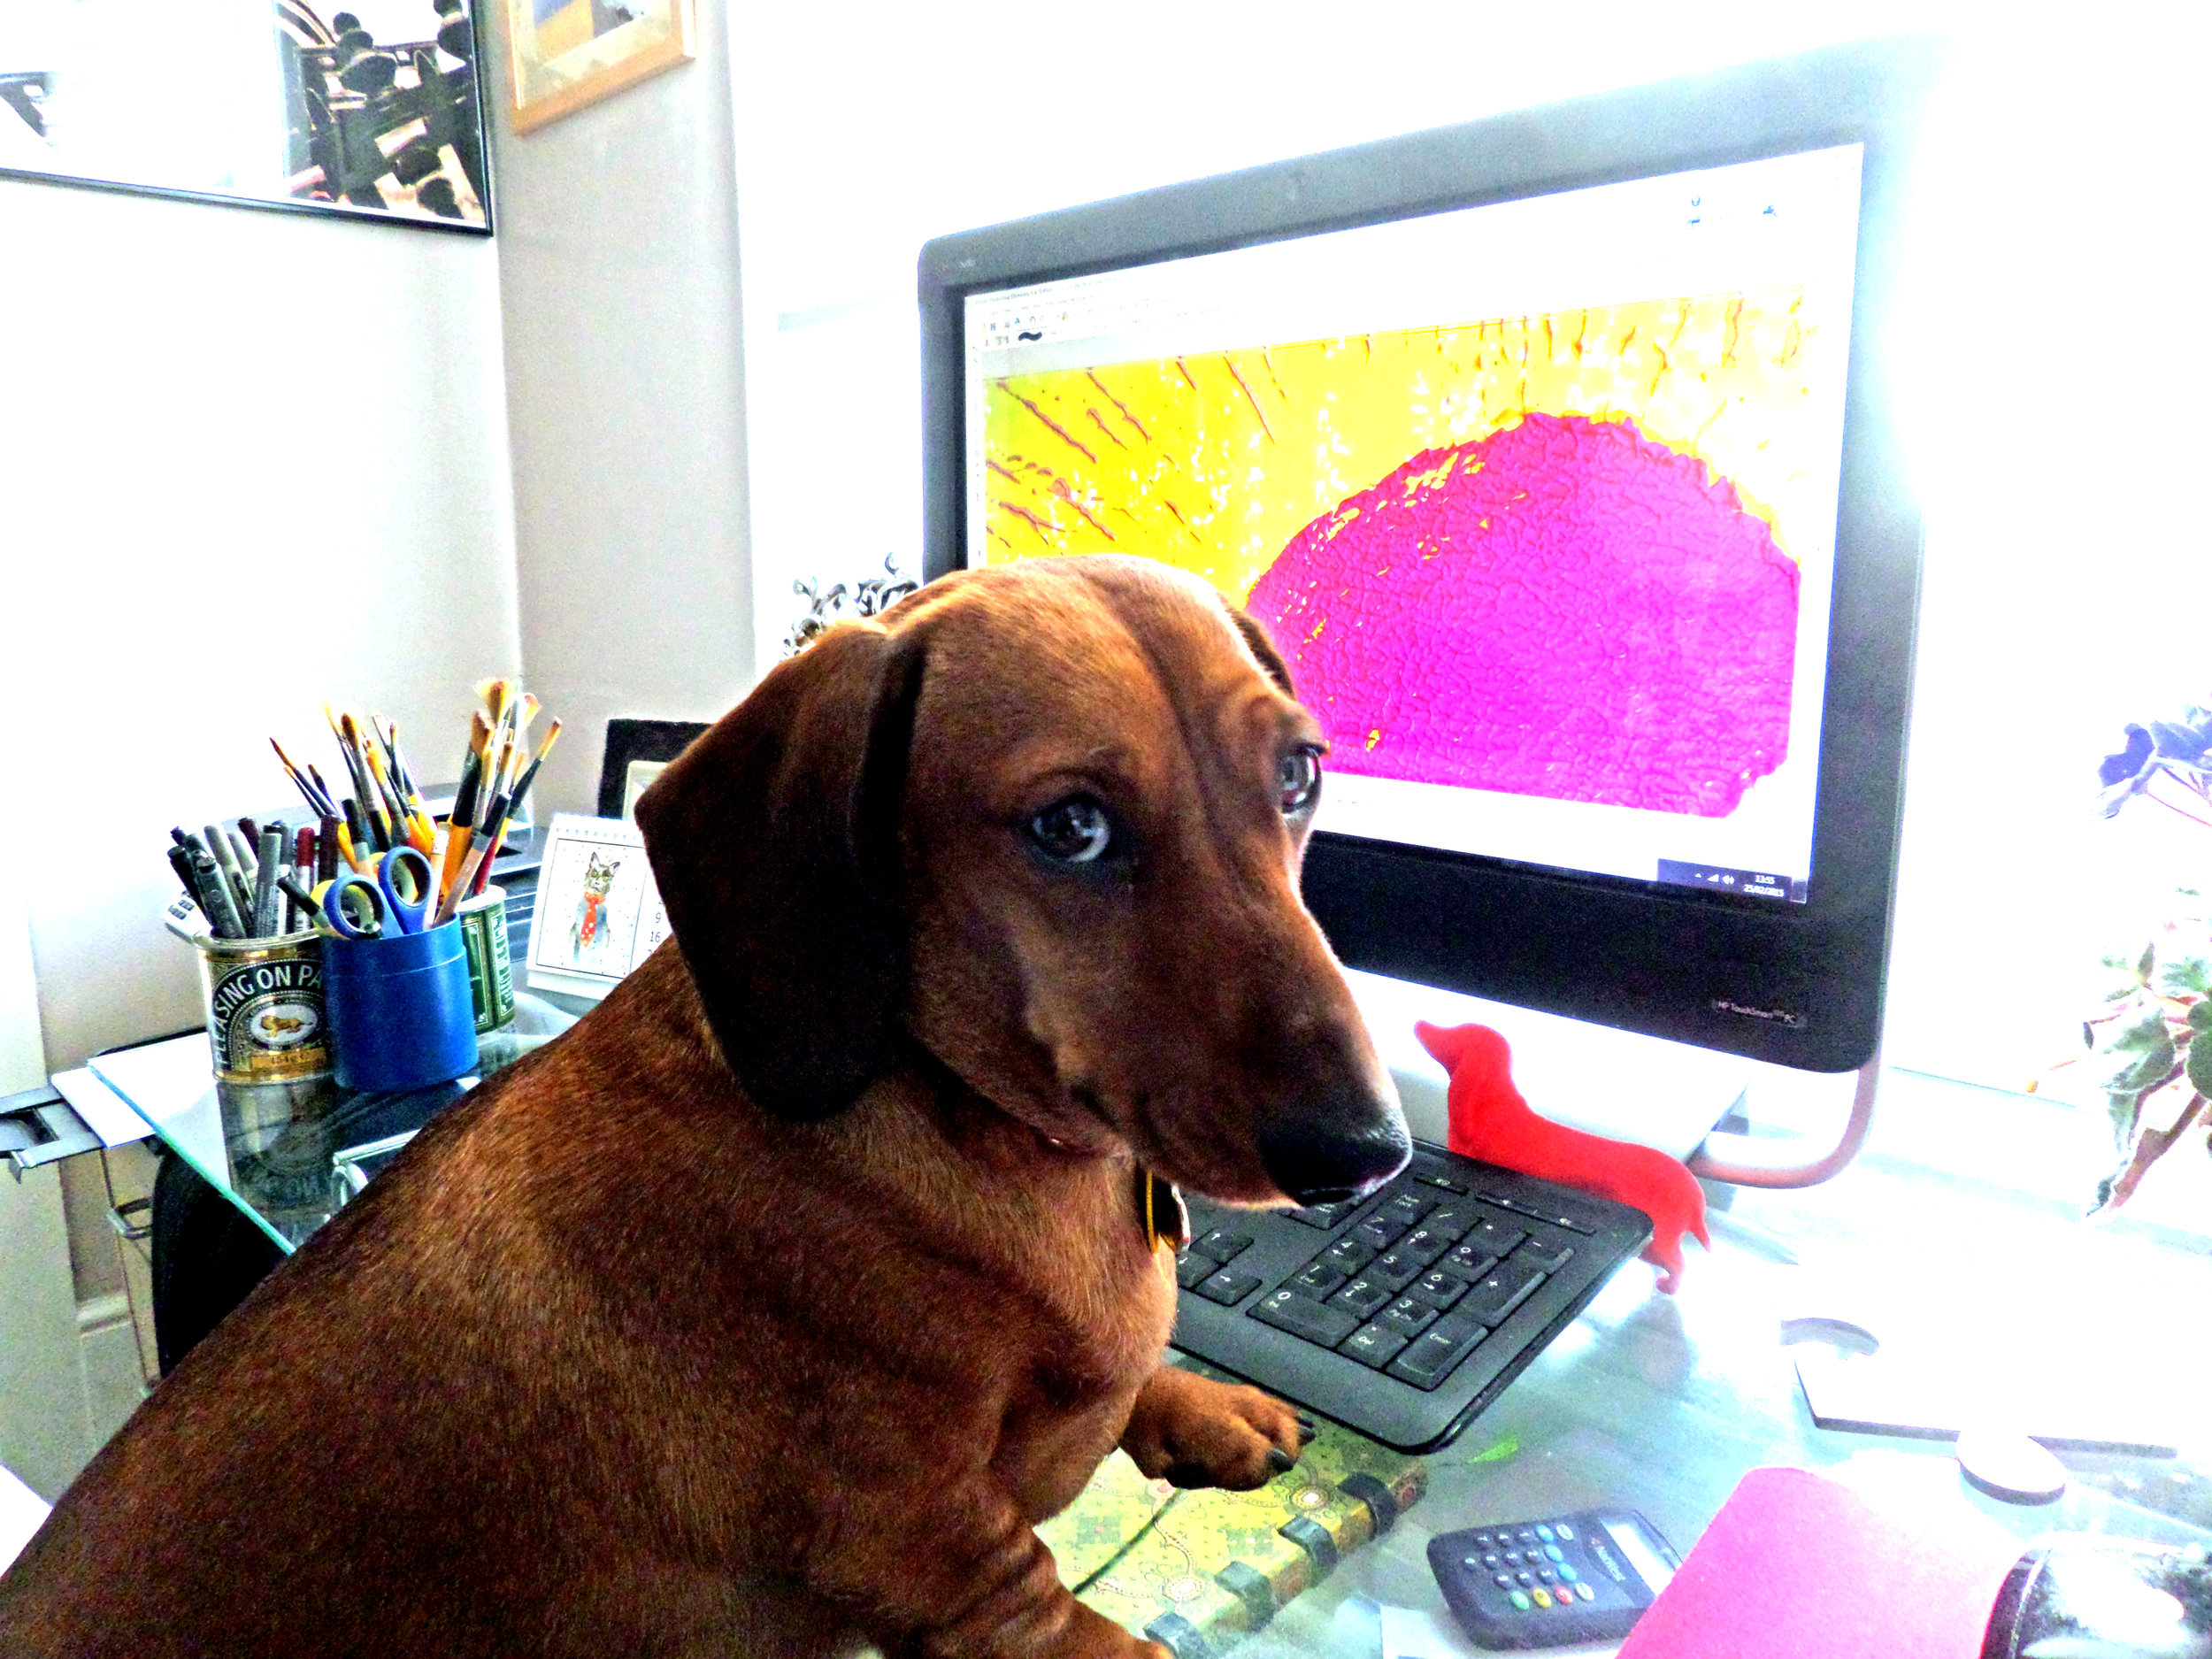 Monty & Me are pleased to take commissions for one off pieces - 'How do you do that?'